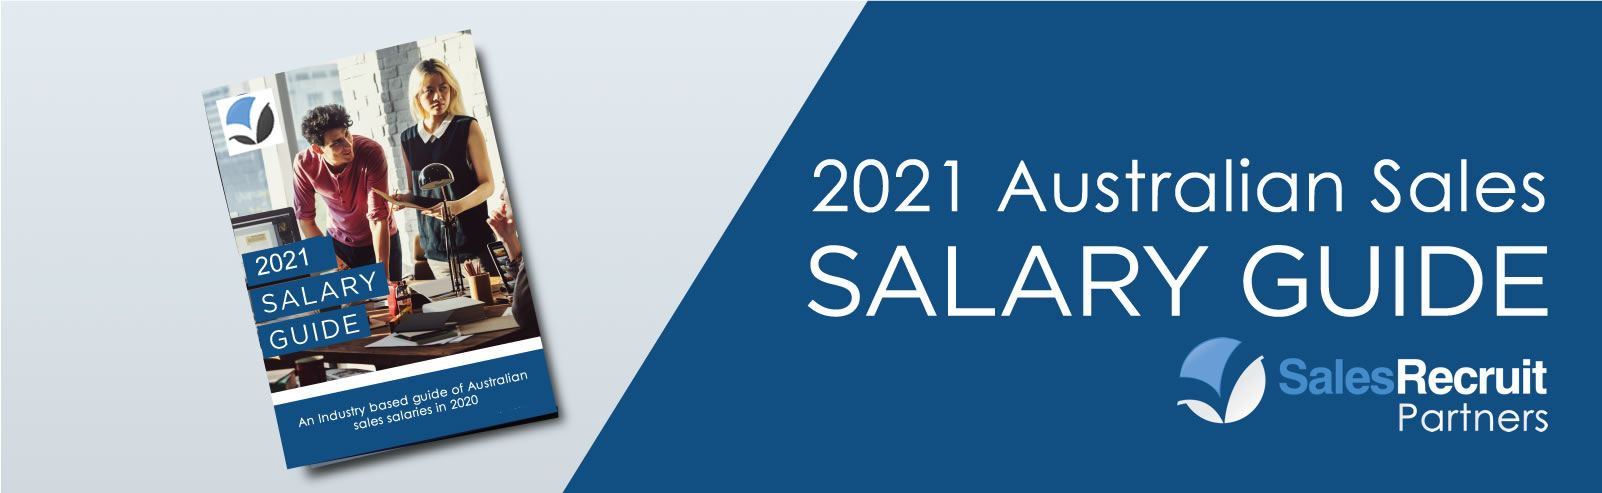 2021 Australian Sales Salary Guide